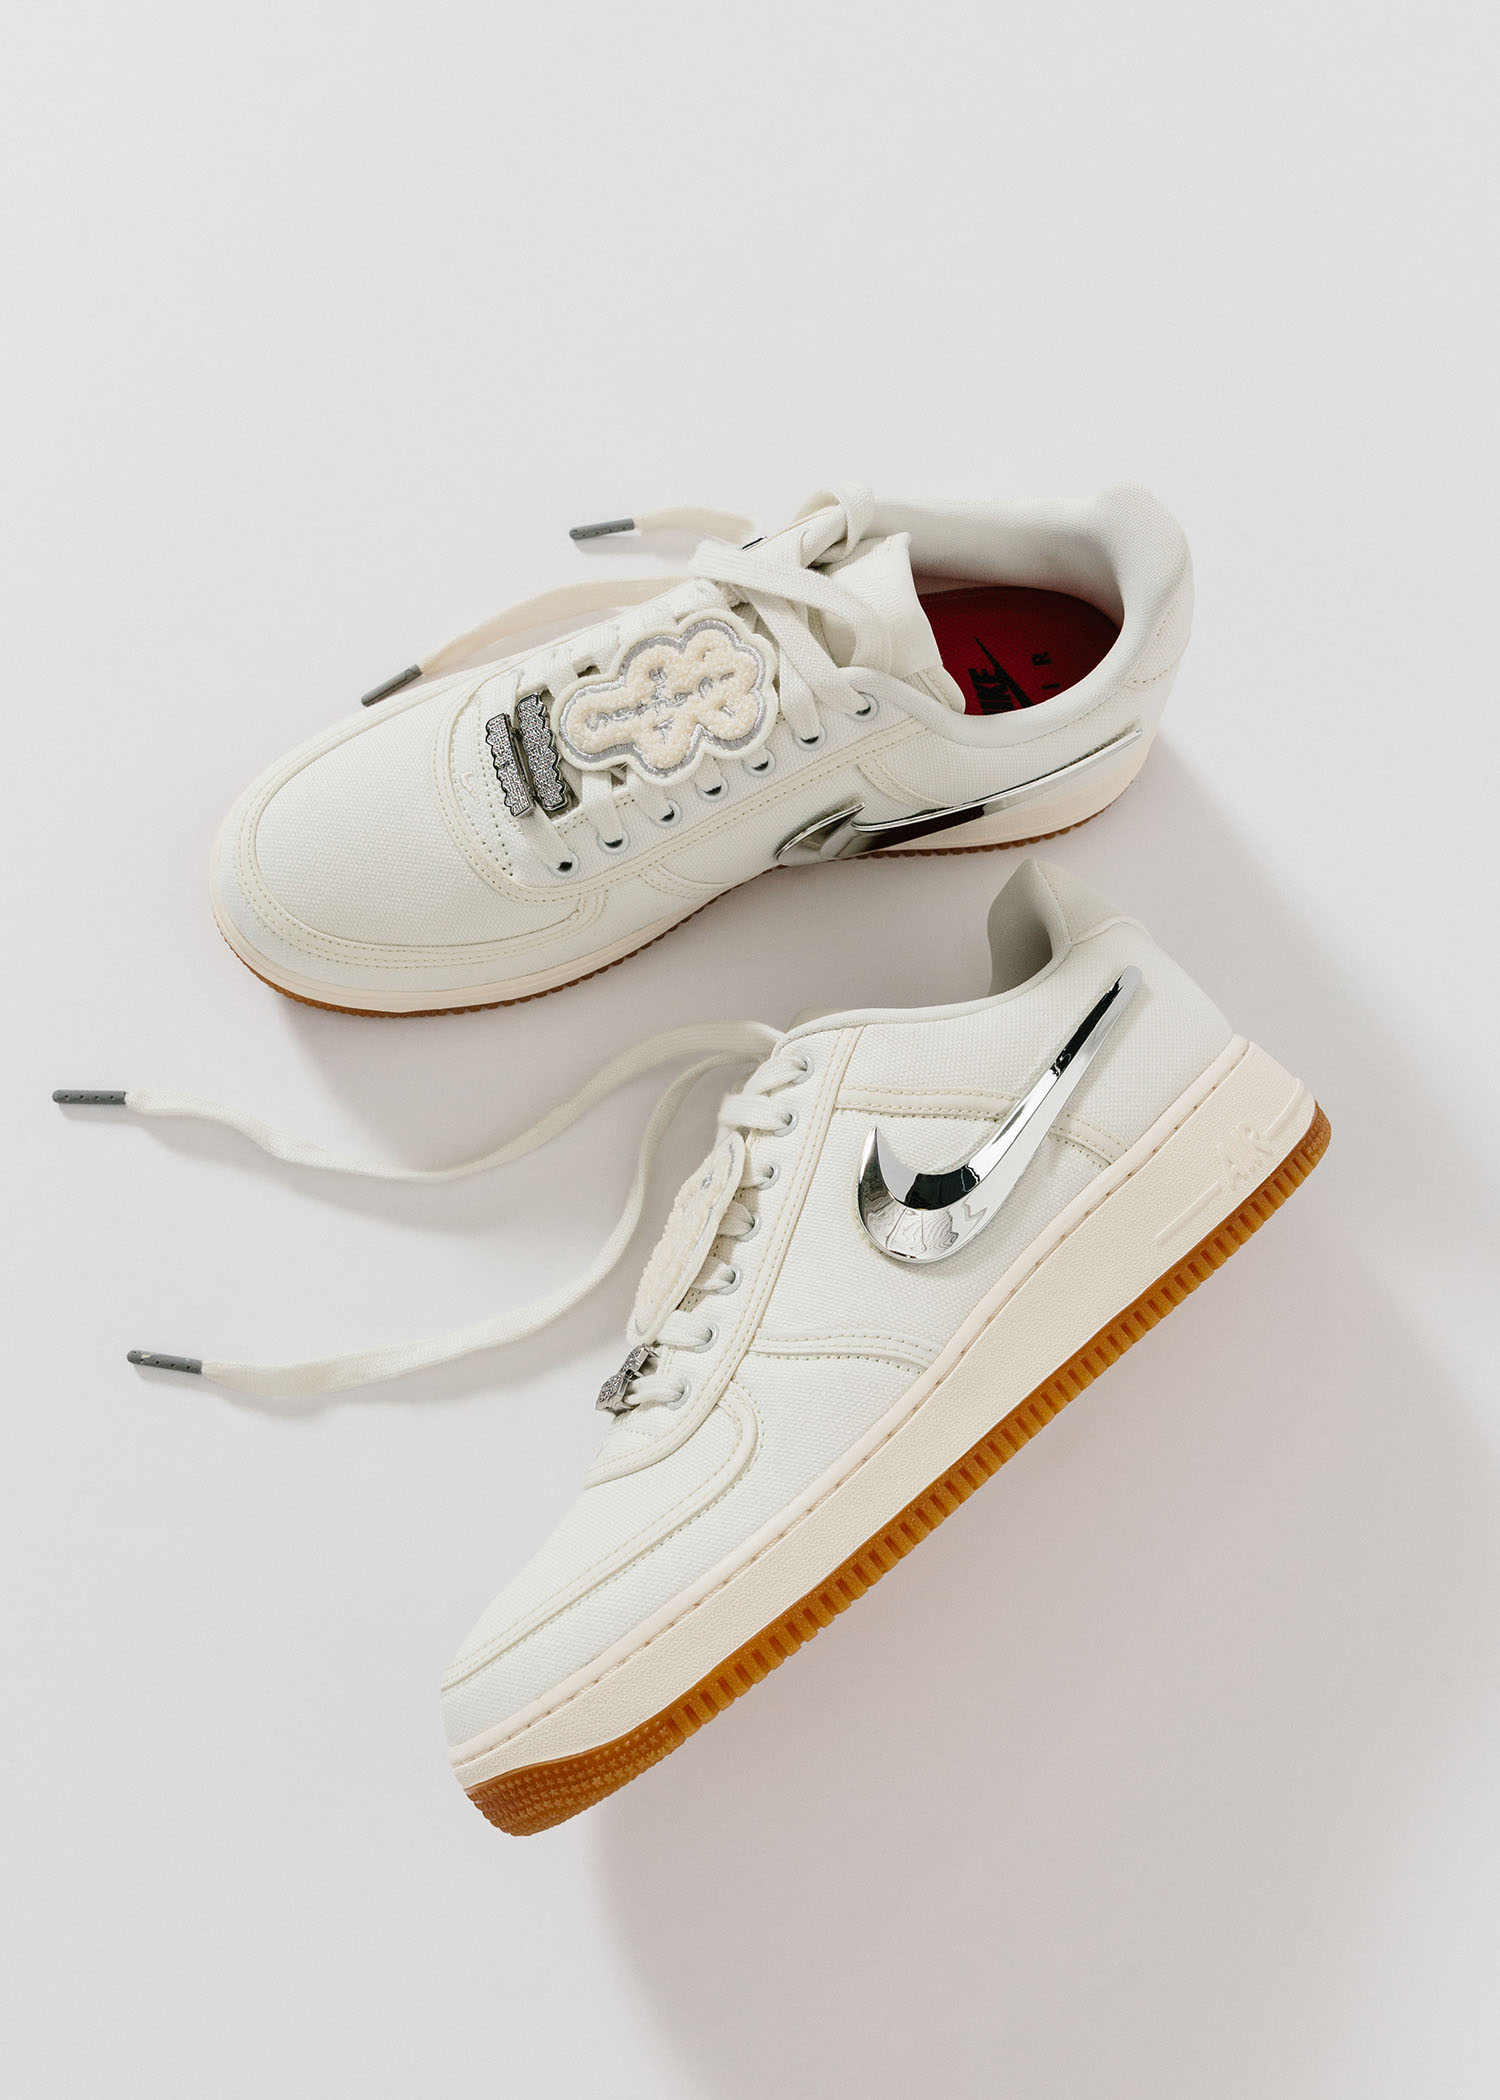 sports shoes fb4f3 4fc82 Need Supply Co.: Sneaker Roundup ft. Travis Scott x Nike Air ...